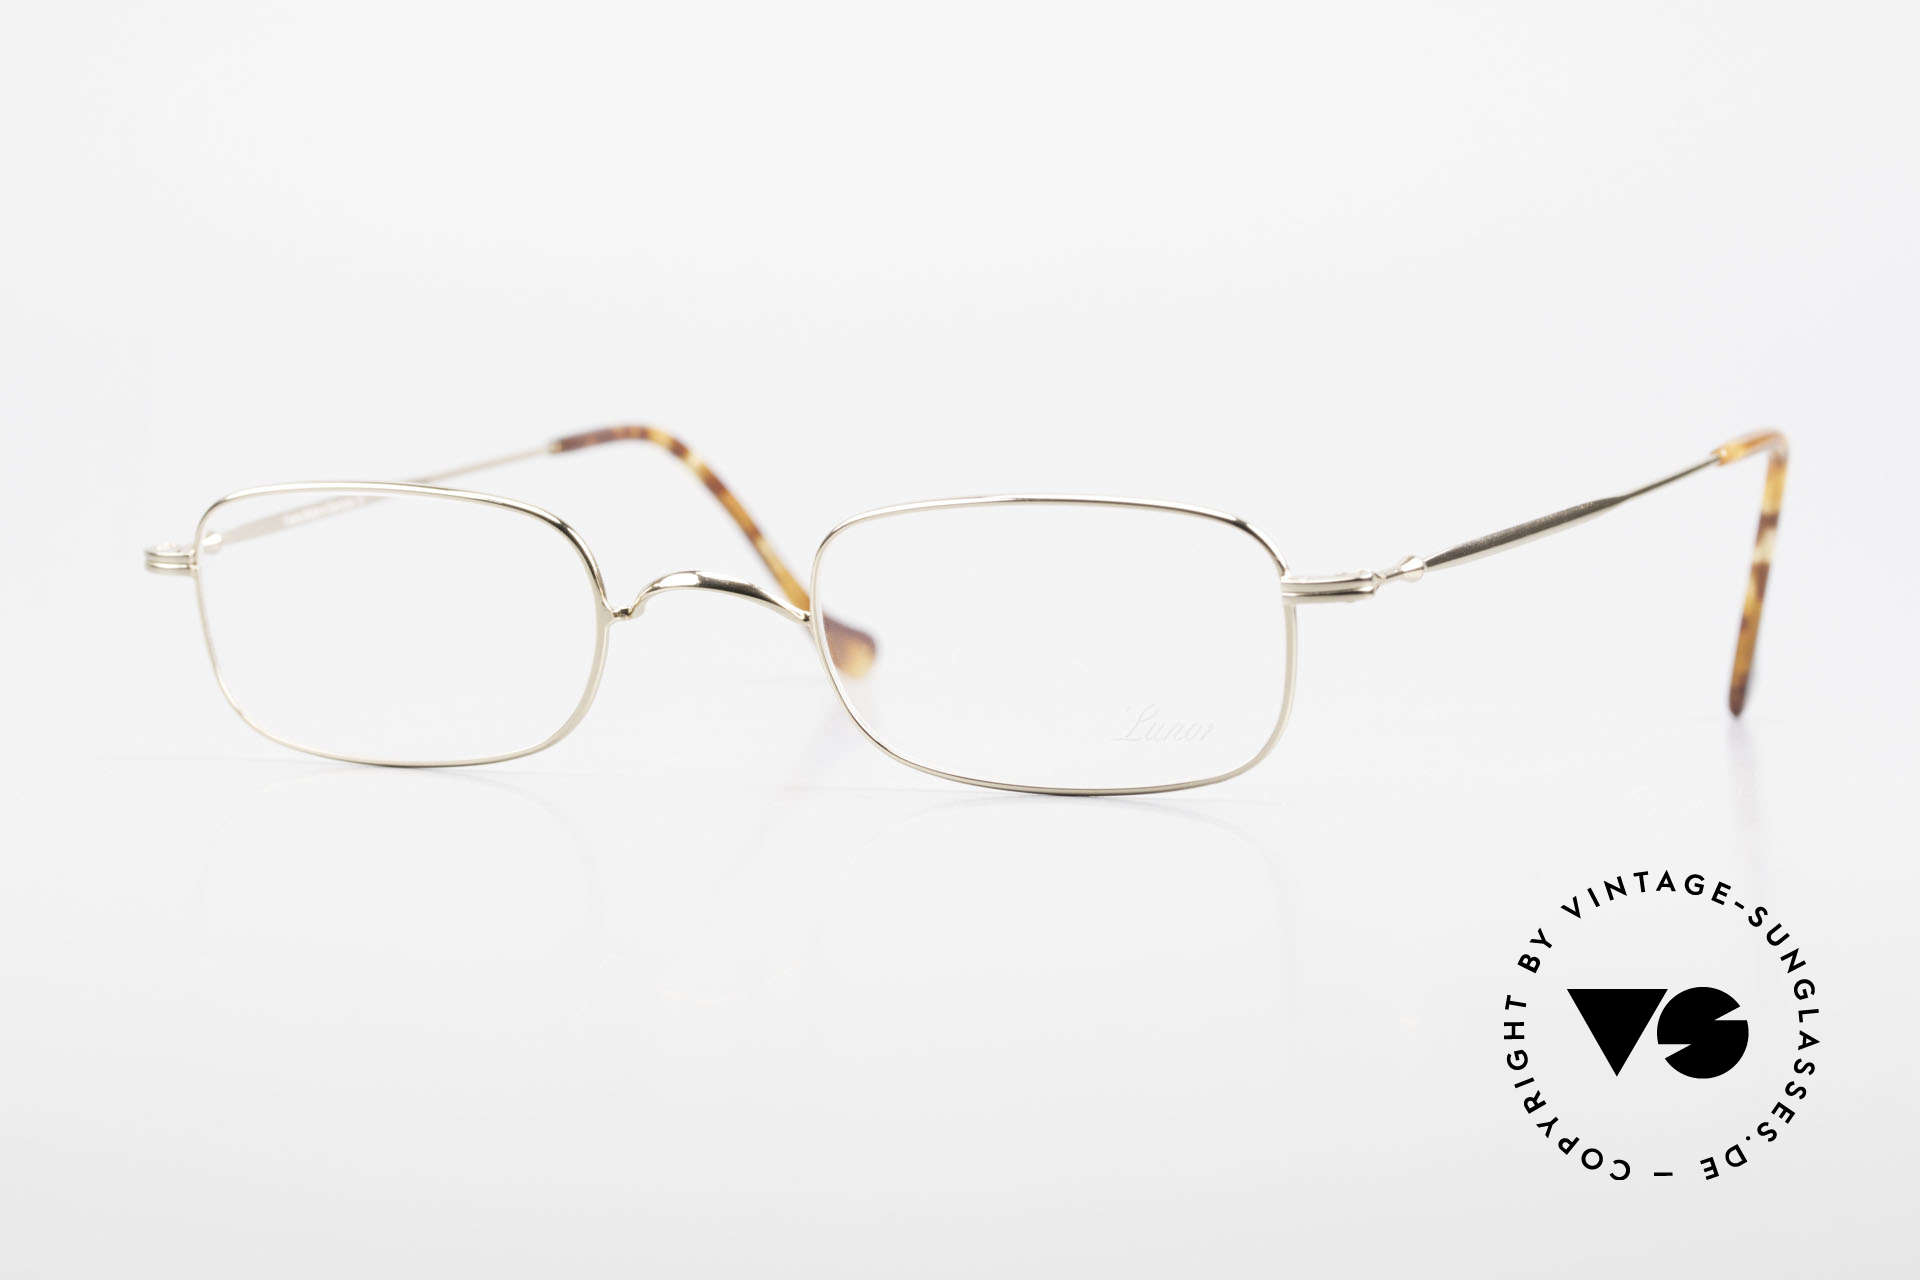 Lunor XV 321 Titanium Frame Gold-Plated, fine Lunor frame made of Titanium (weighs 9gram only), Made for Men and Women